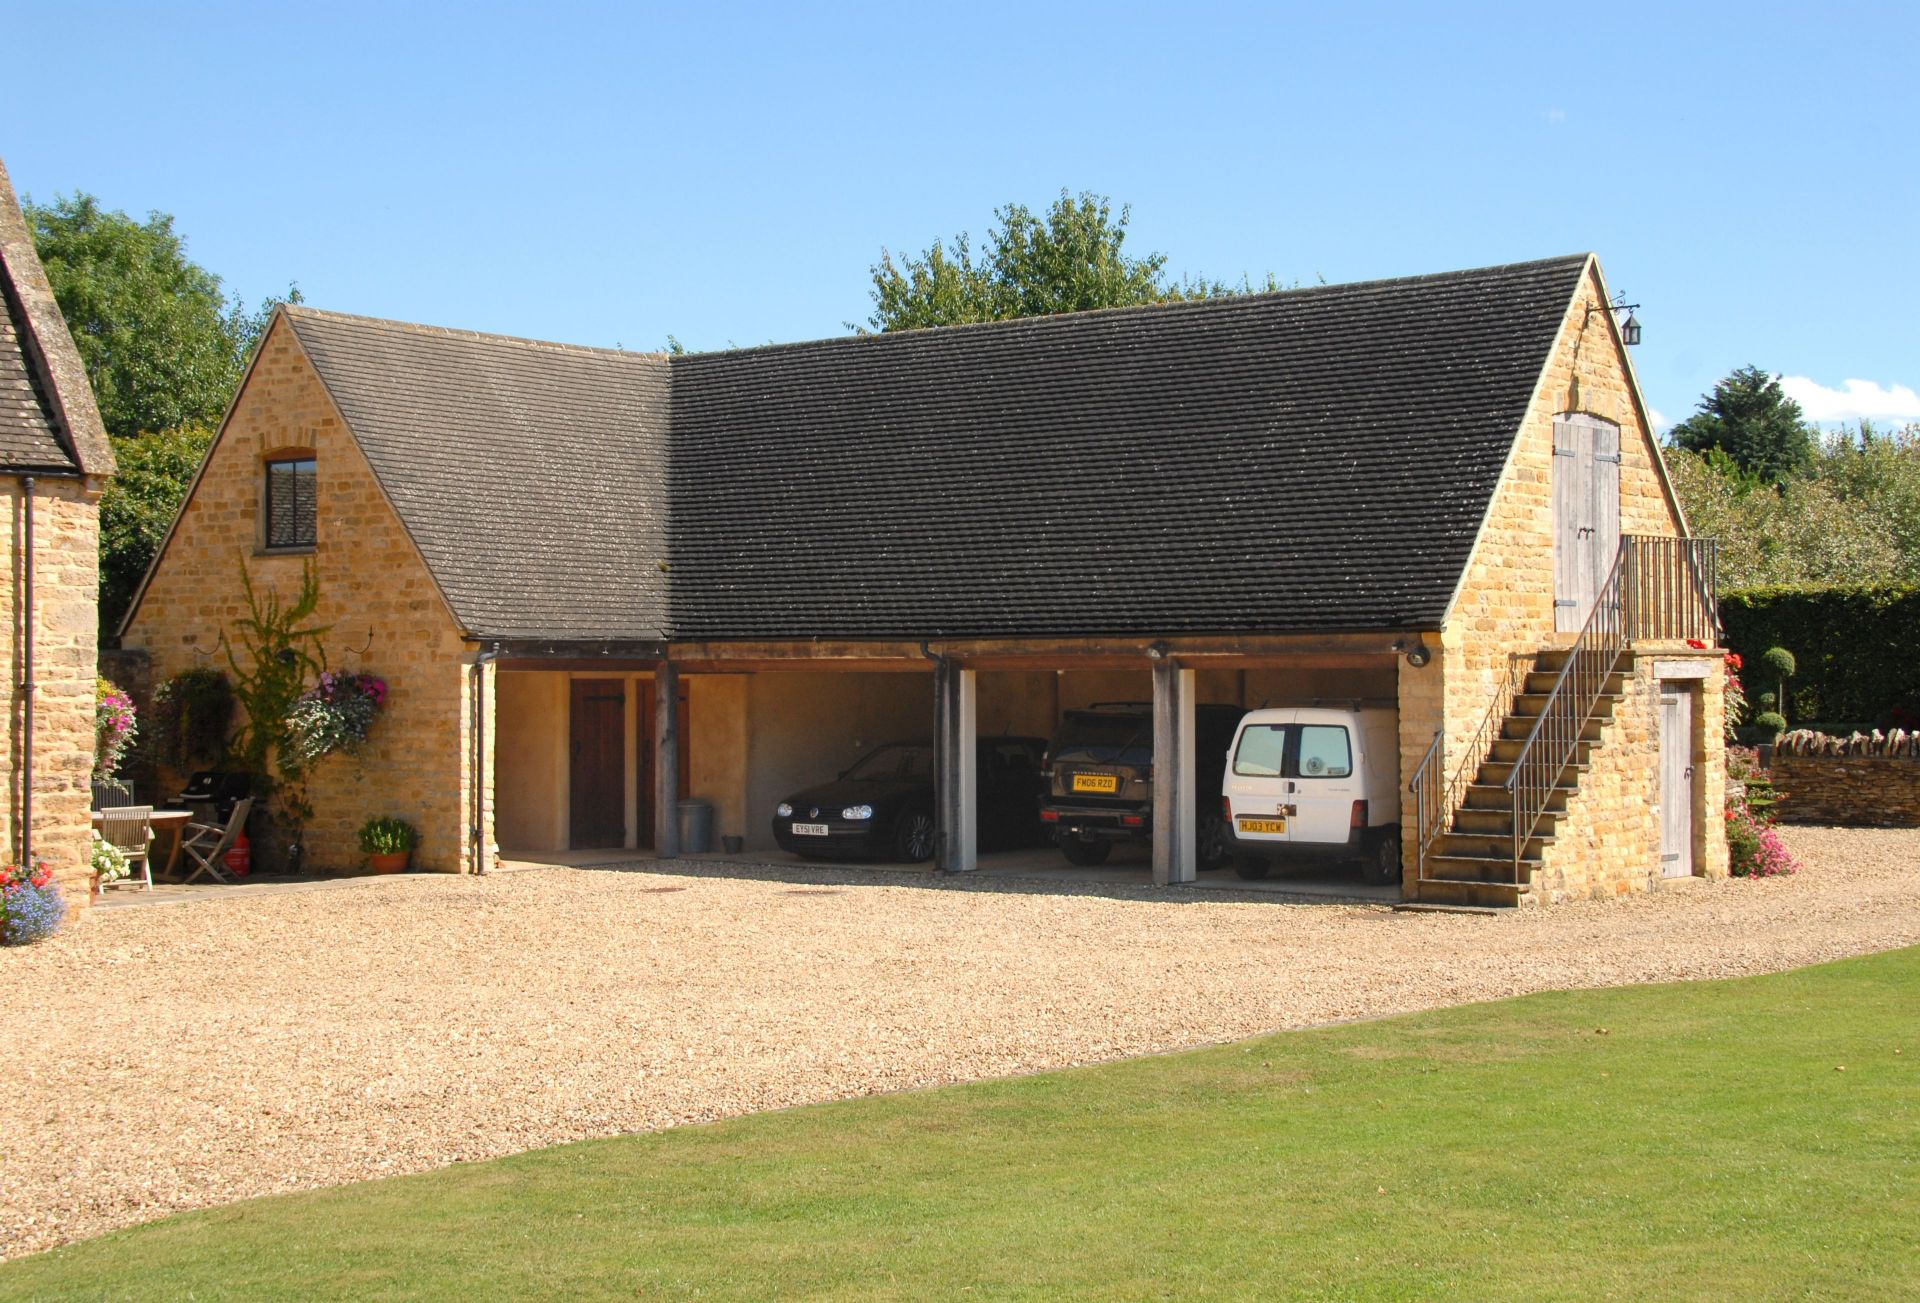 Parking area and barn